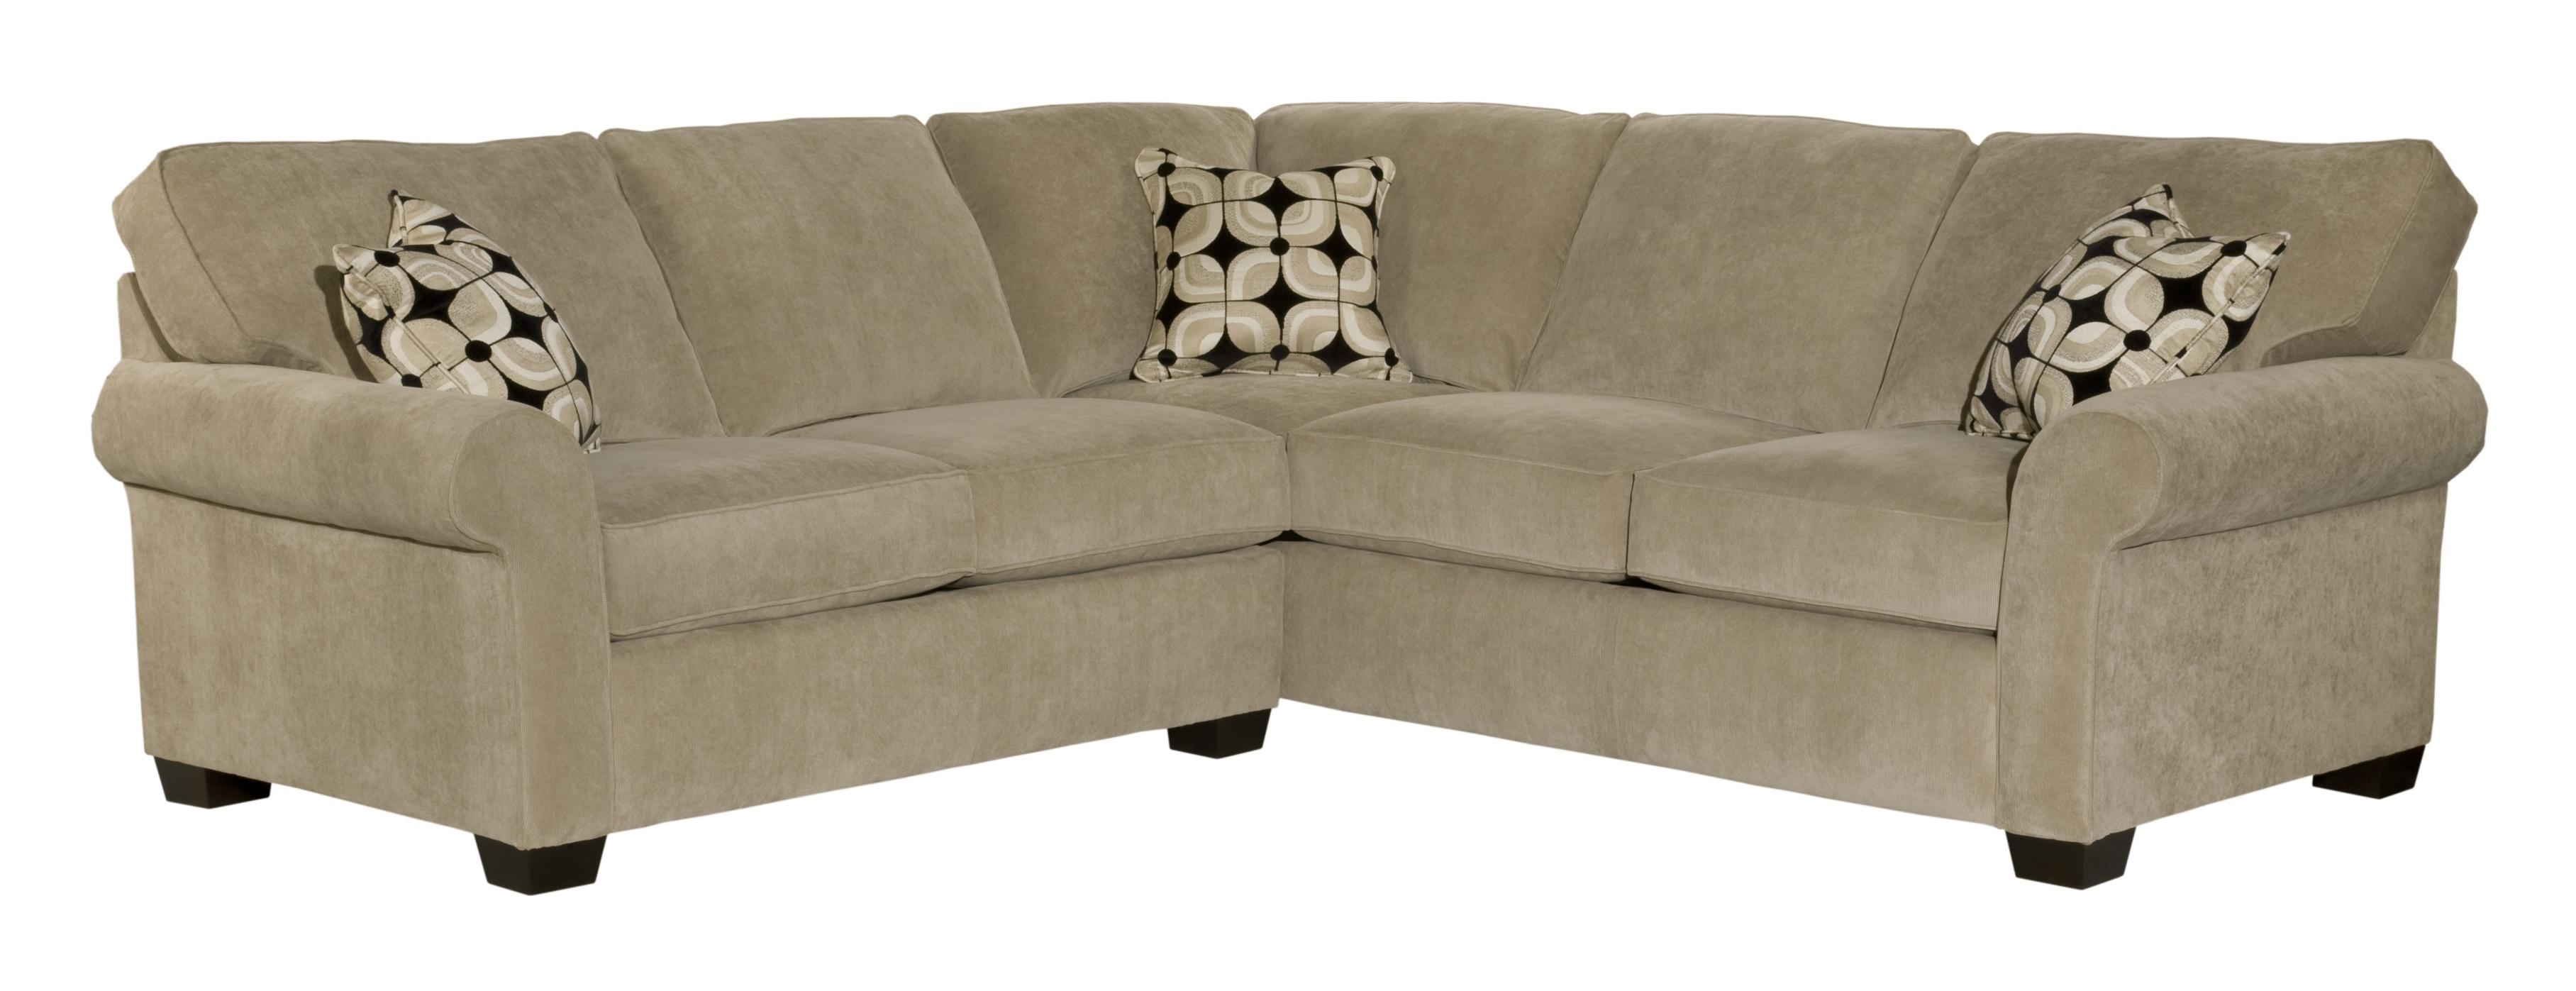 Broyhill Furniture Ethan Two Piece Sectional With Corner Sofa - Ahfa inside Benton 4 Piece Sectionals (Image 9 of 30)